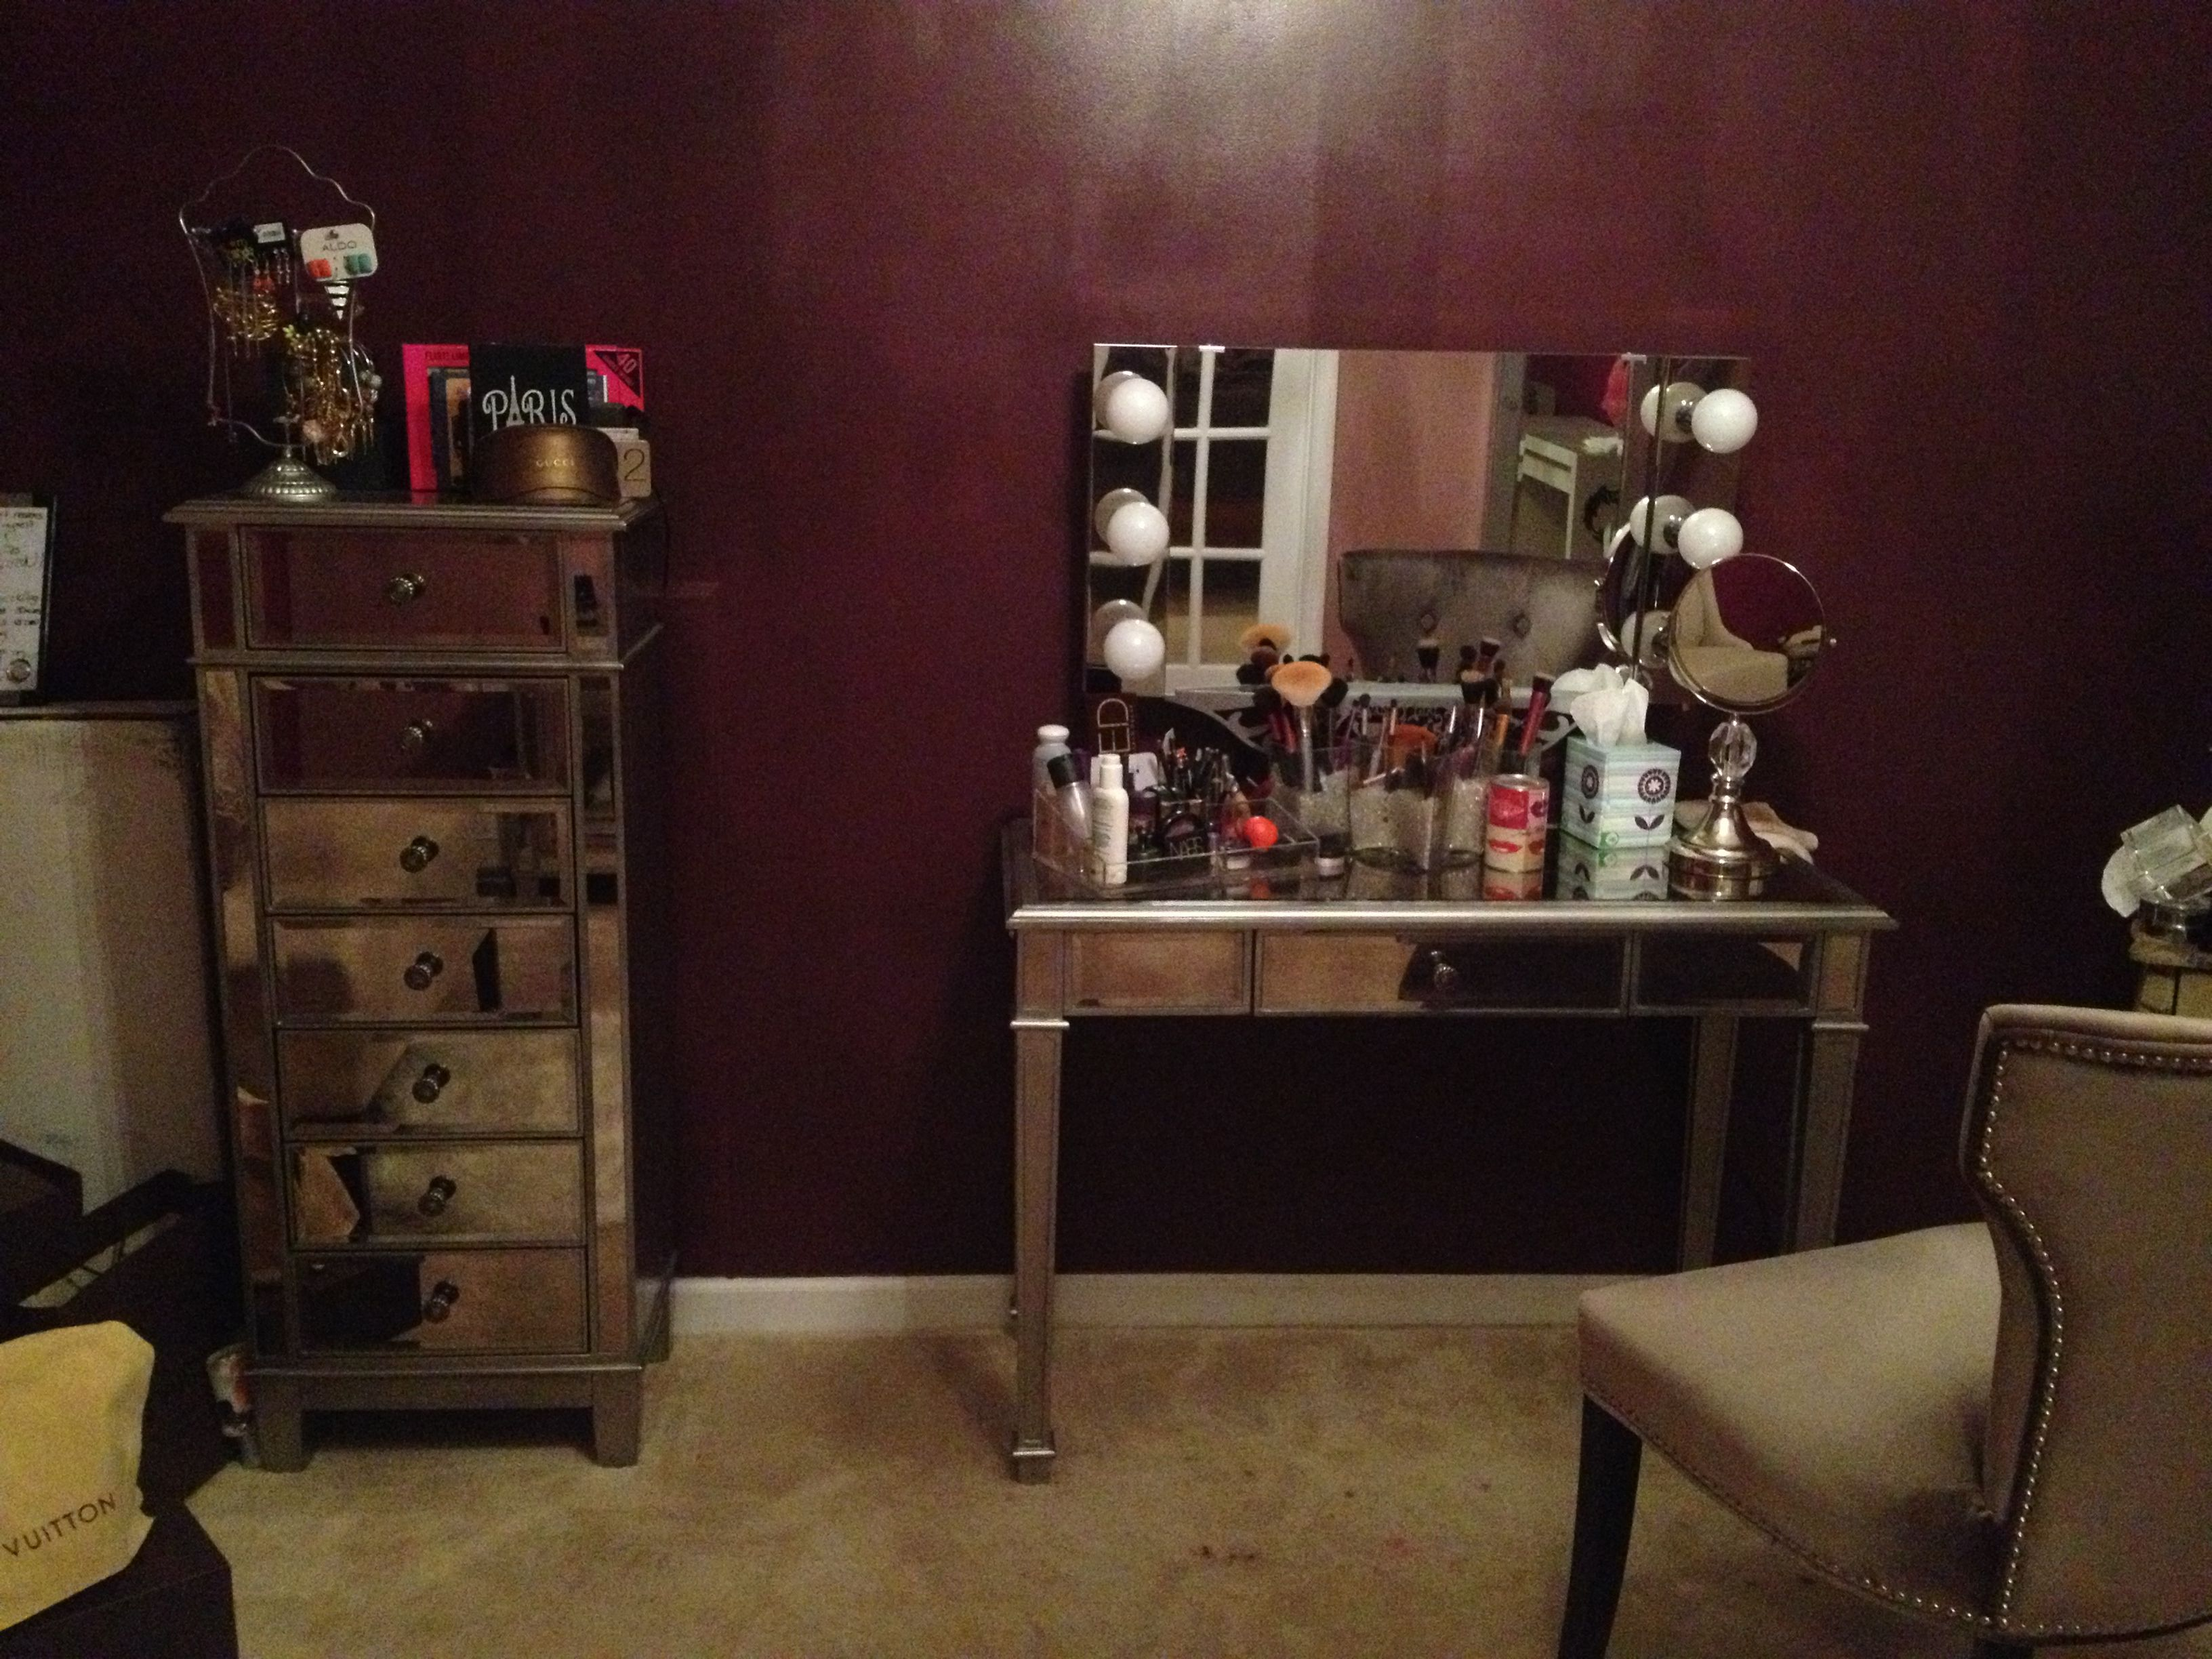 Pier Wall Bedroom Furniture Pier 1 Hayworth Vanity And Chestmirrored Furniture In My